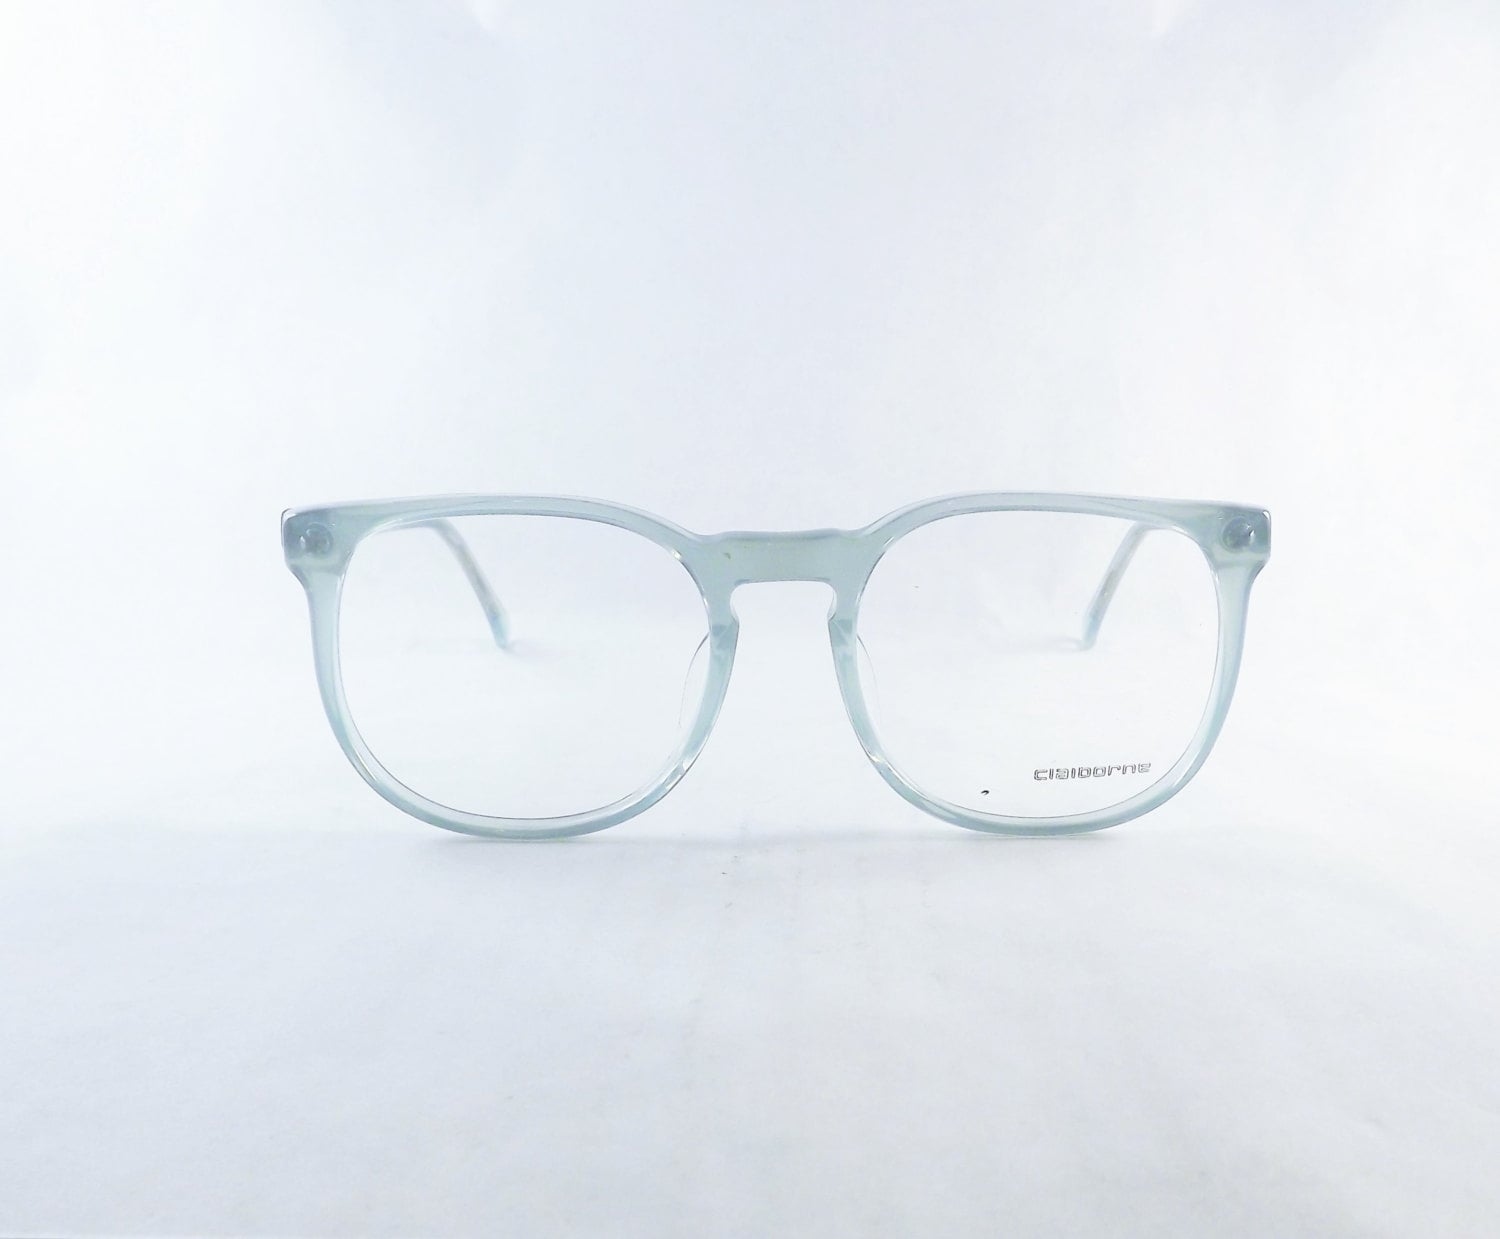 Round Eyeglasses Big Glasses Transparent Glasses Designer